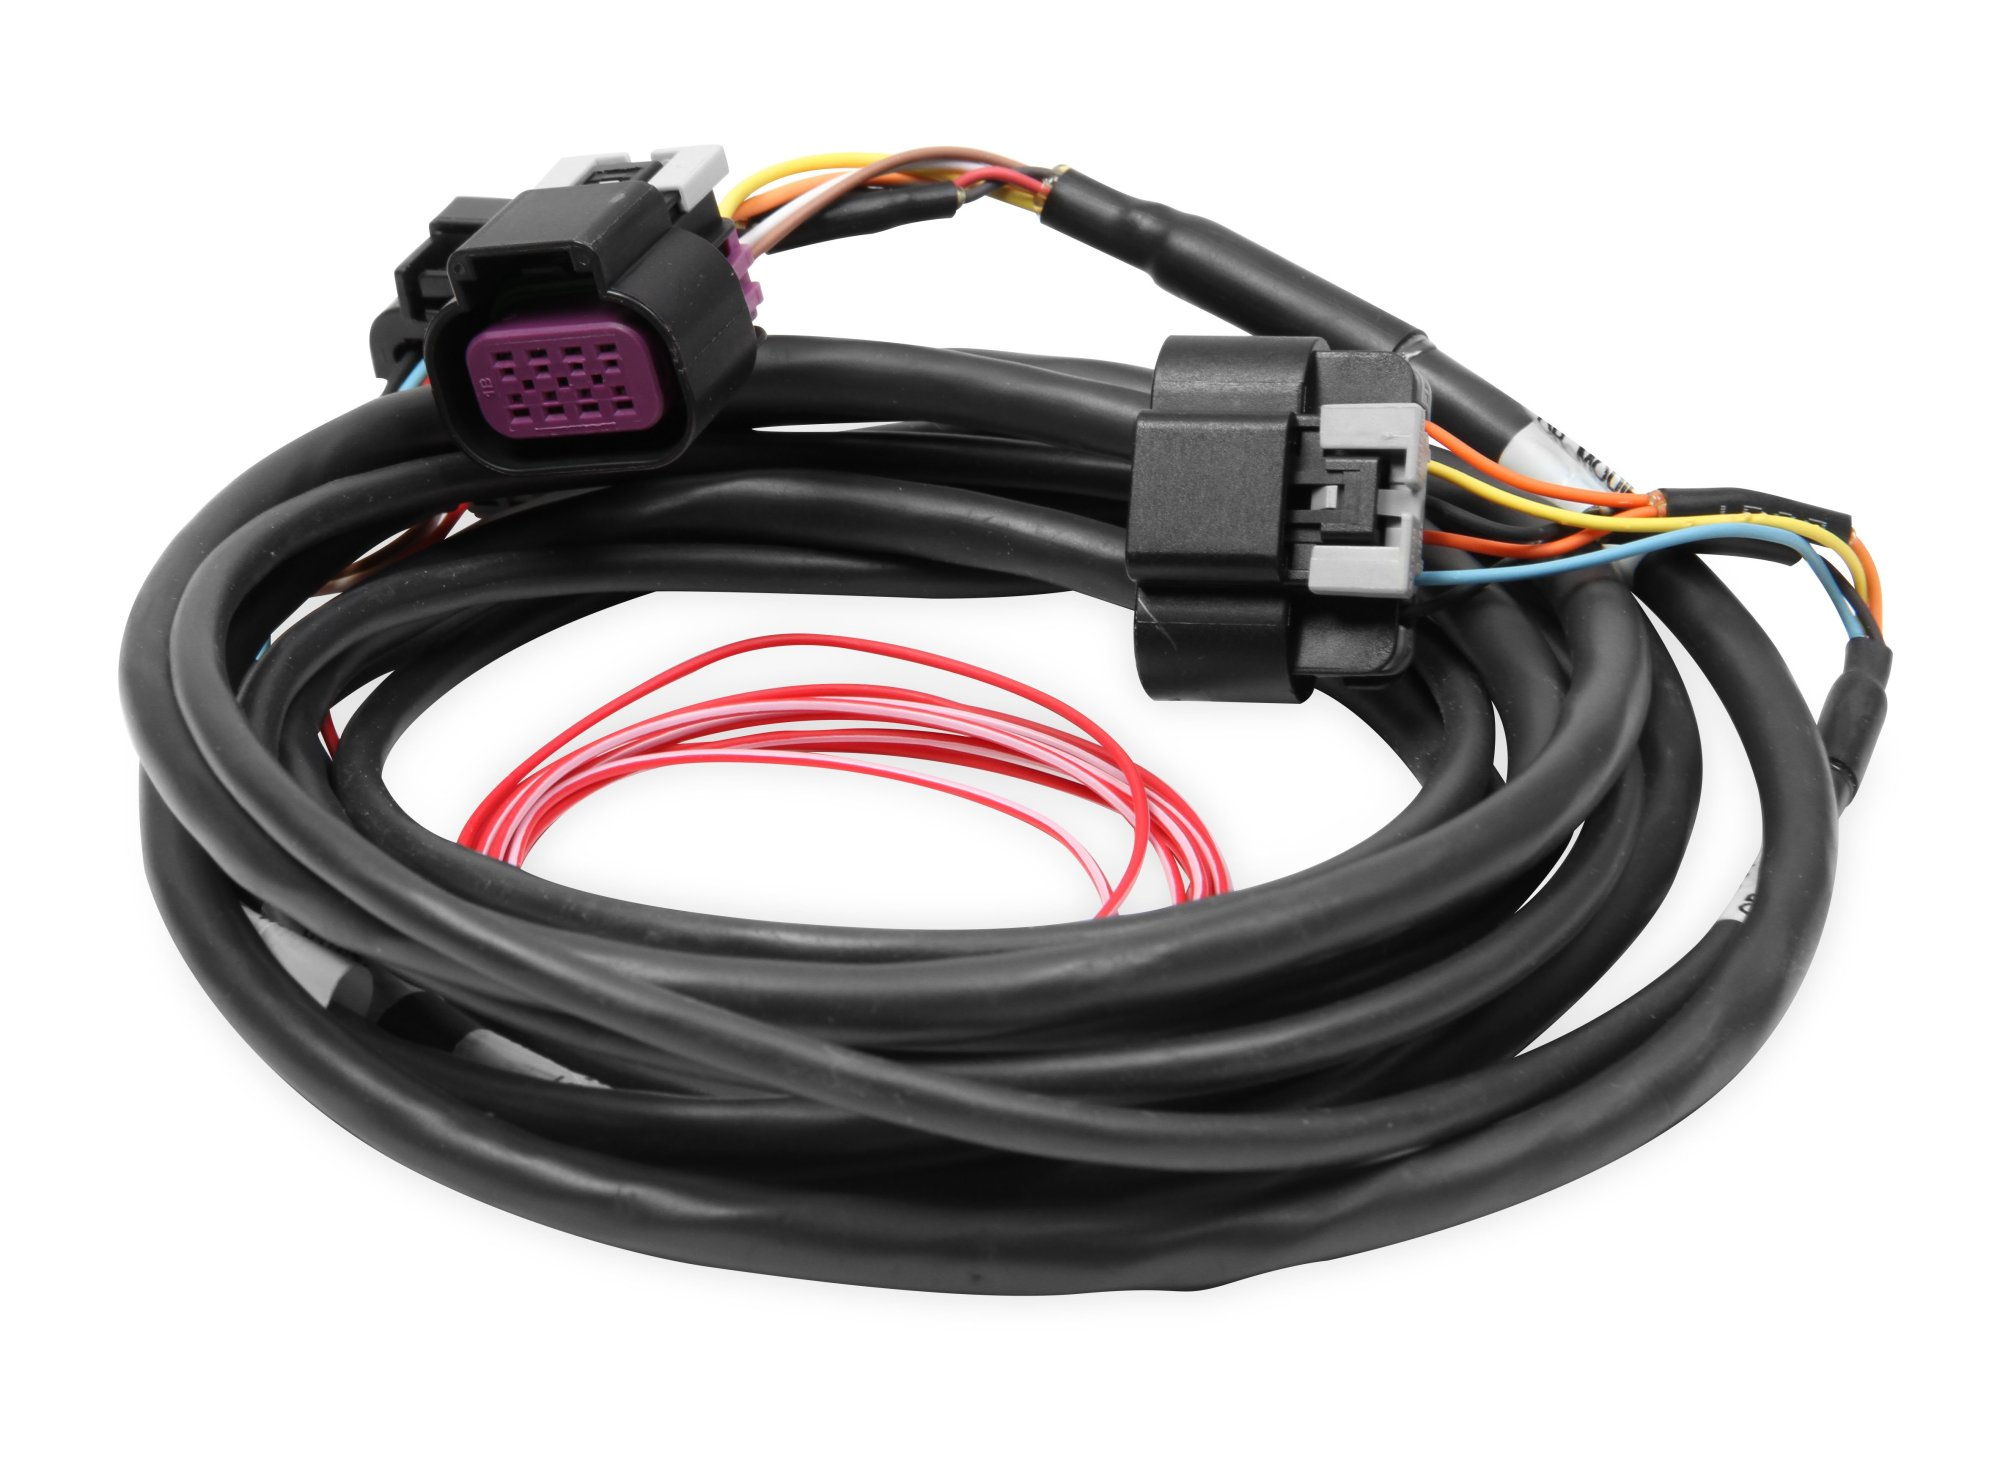 hight resolution of holley efi 558 429 dominator efi gm drive by wire harness early truck rh holley com gm wiring harness color code gm wiring harness plugs